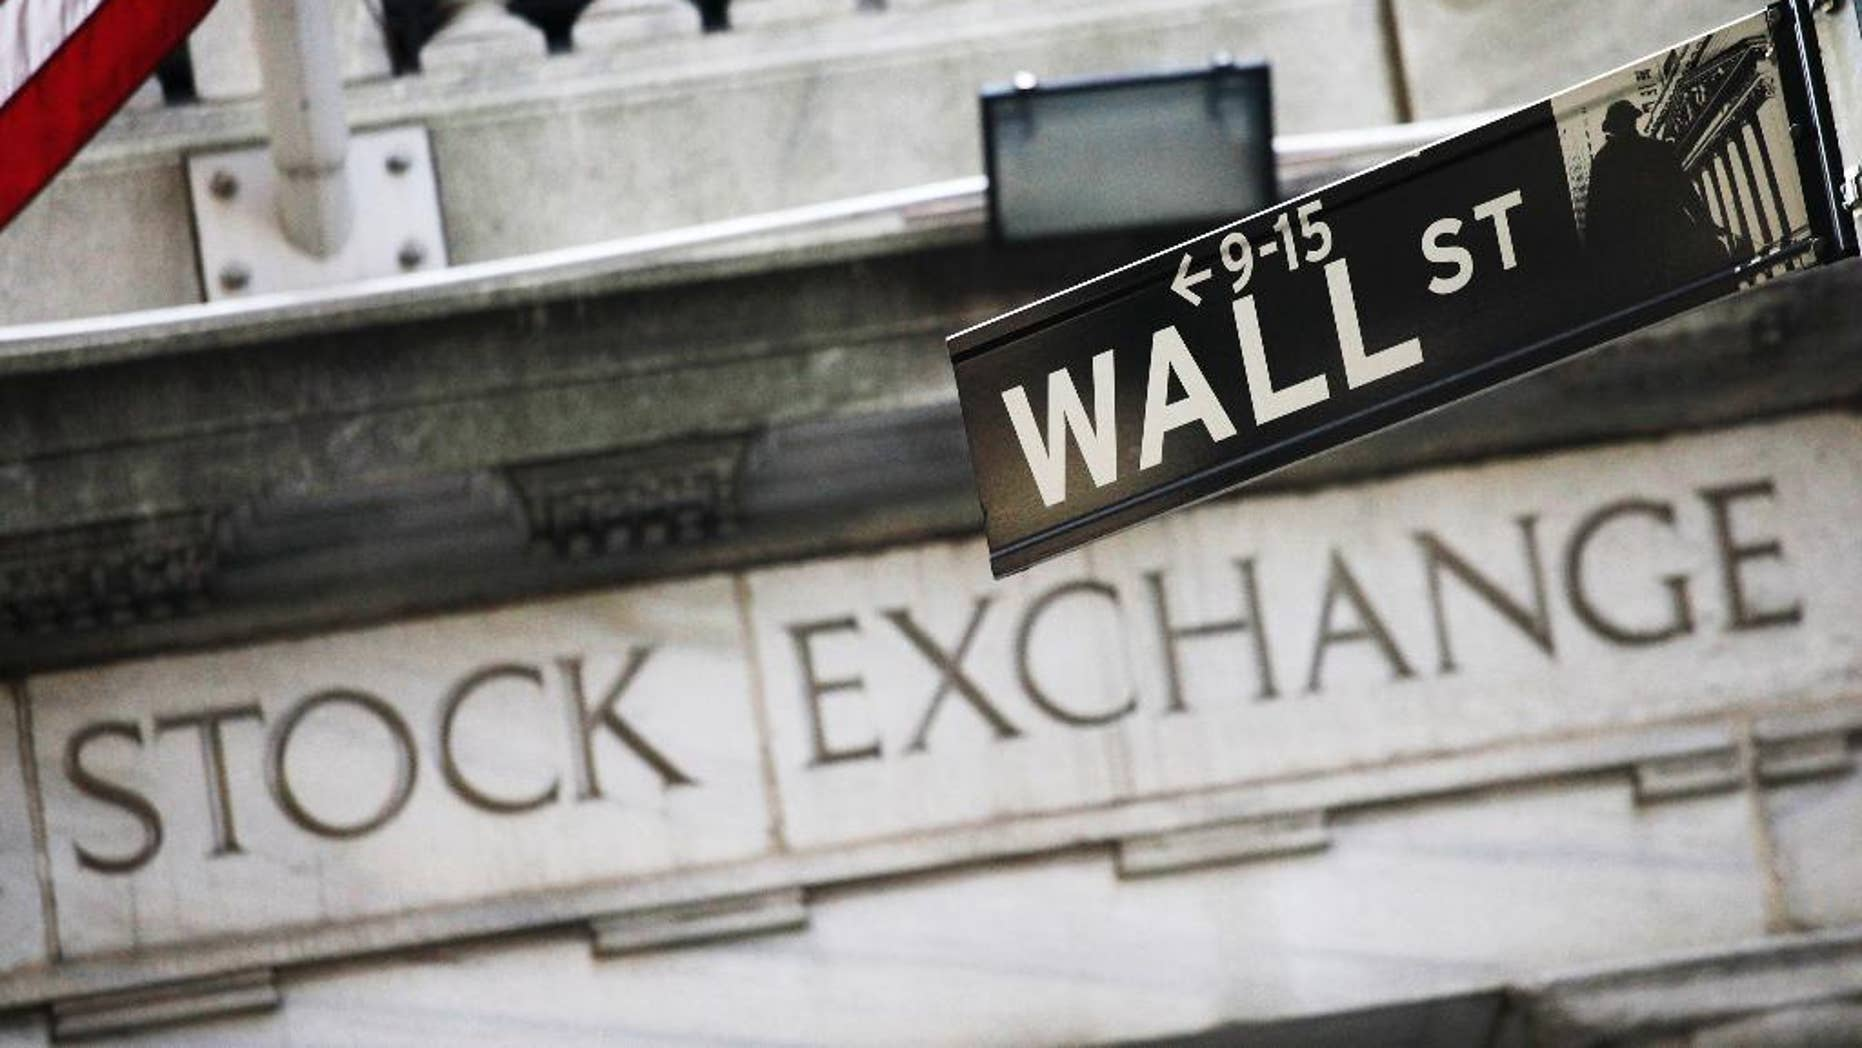 FILE - This July 16, 2013, file photo, shows a Wall Street street sign outside the New York Stock Exchange in New York. European stocks bounced back Monday, Aug. 18, 2014, from Ukraine-related concerns that had caused sharp selling a week earlier. Wall Street was expected to open higher but Asian markets were subdued by further signs of weakness in China's property market. (AP Photo/Mark Lennihan, File)